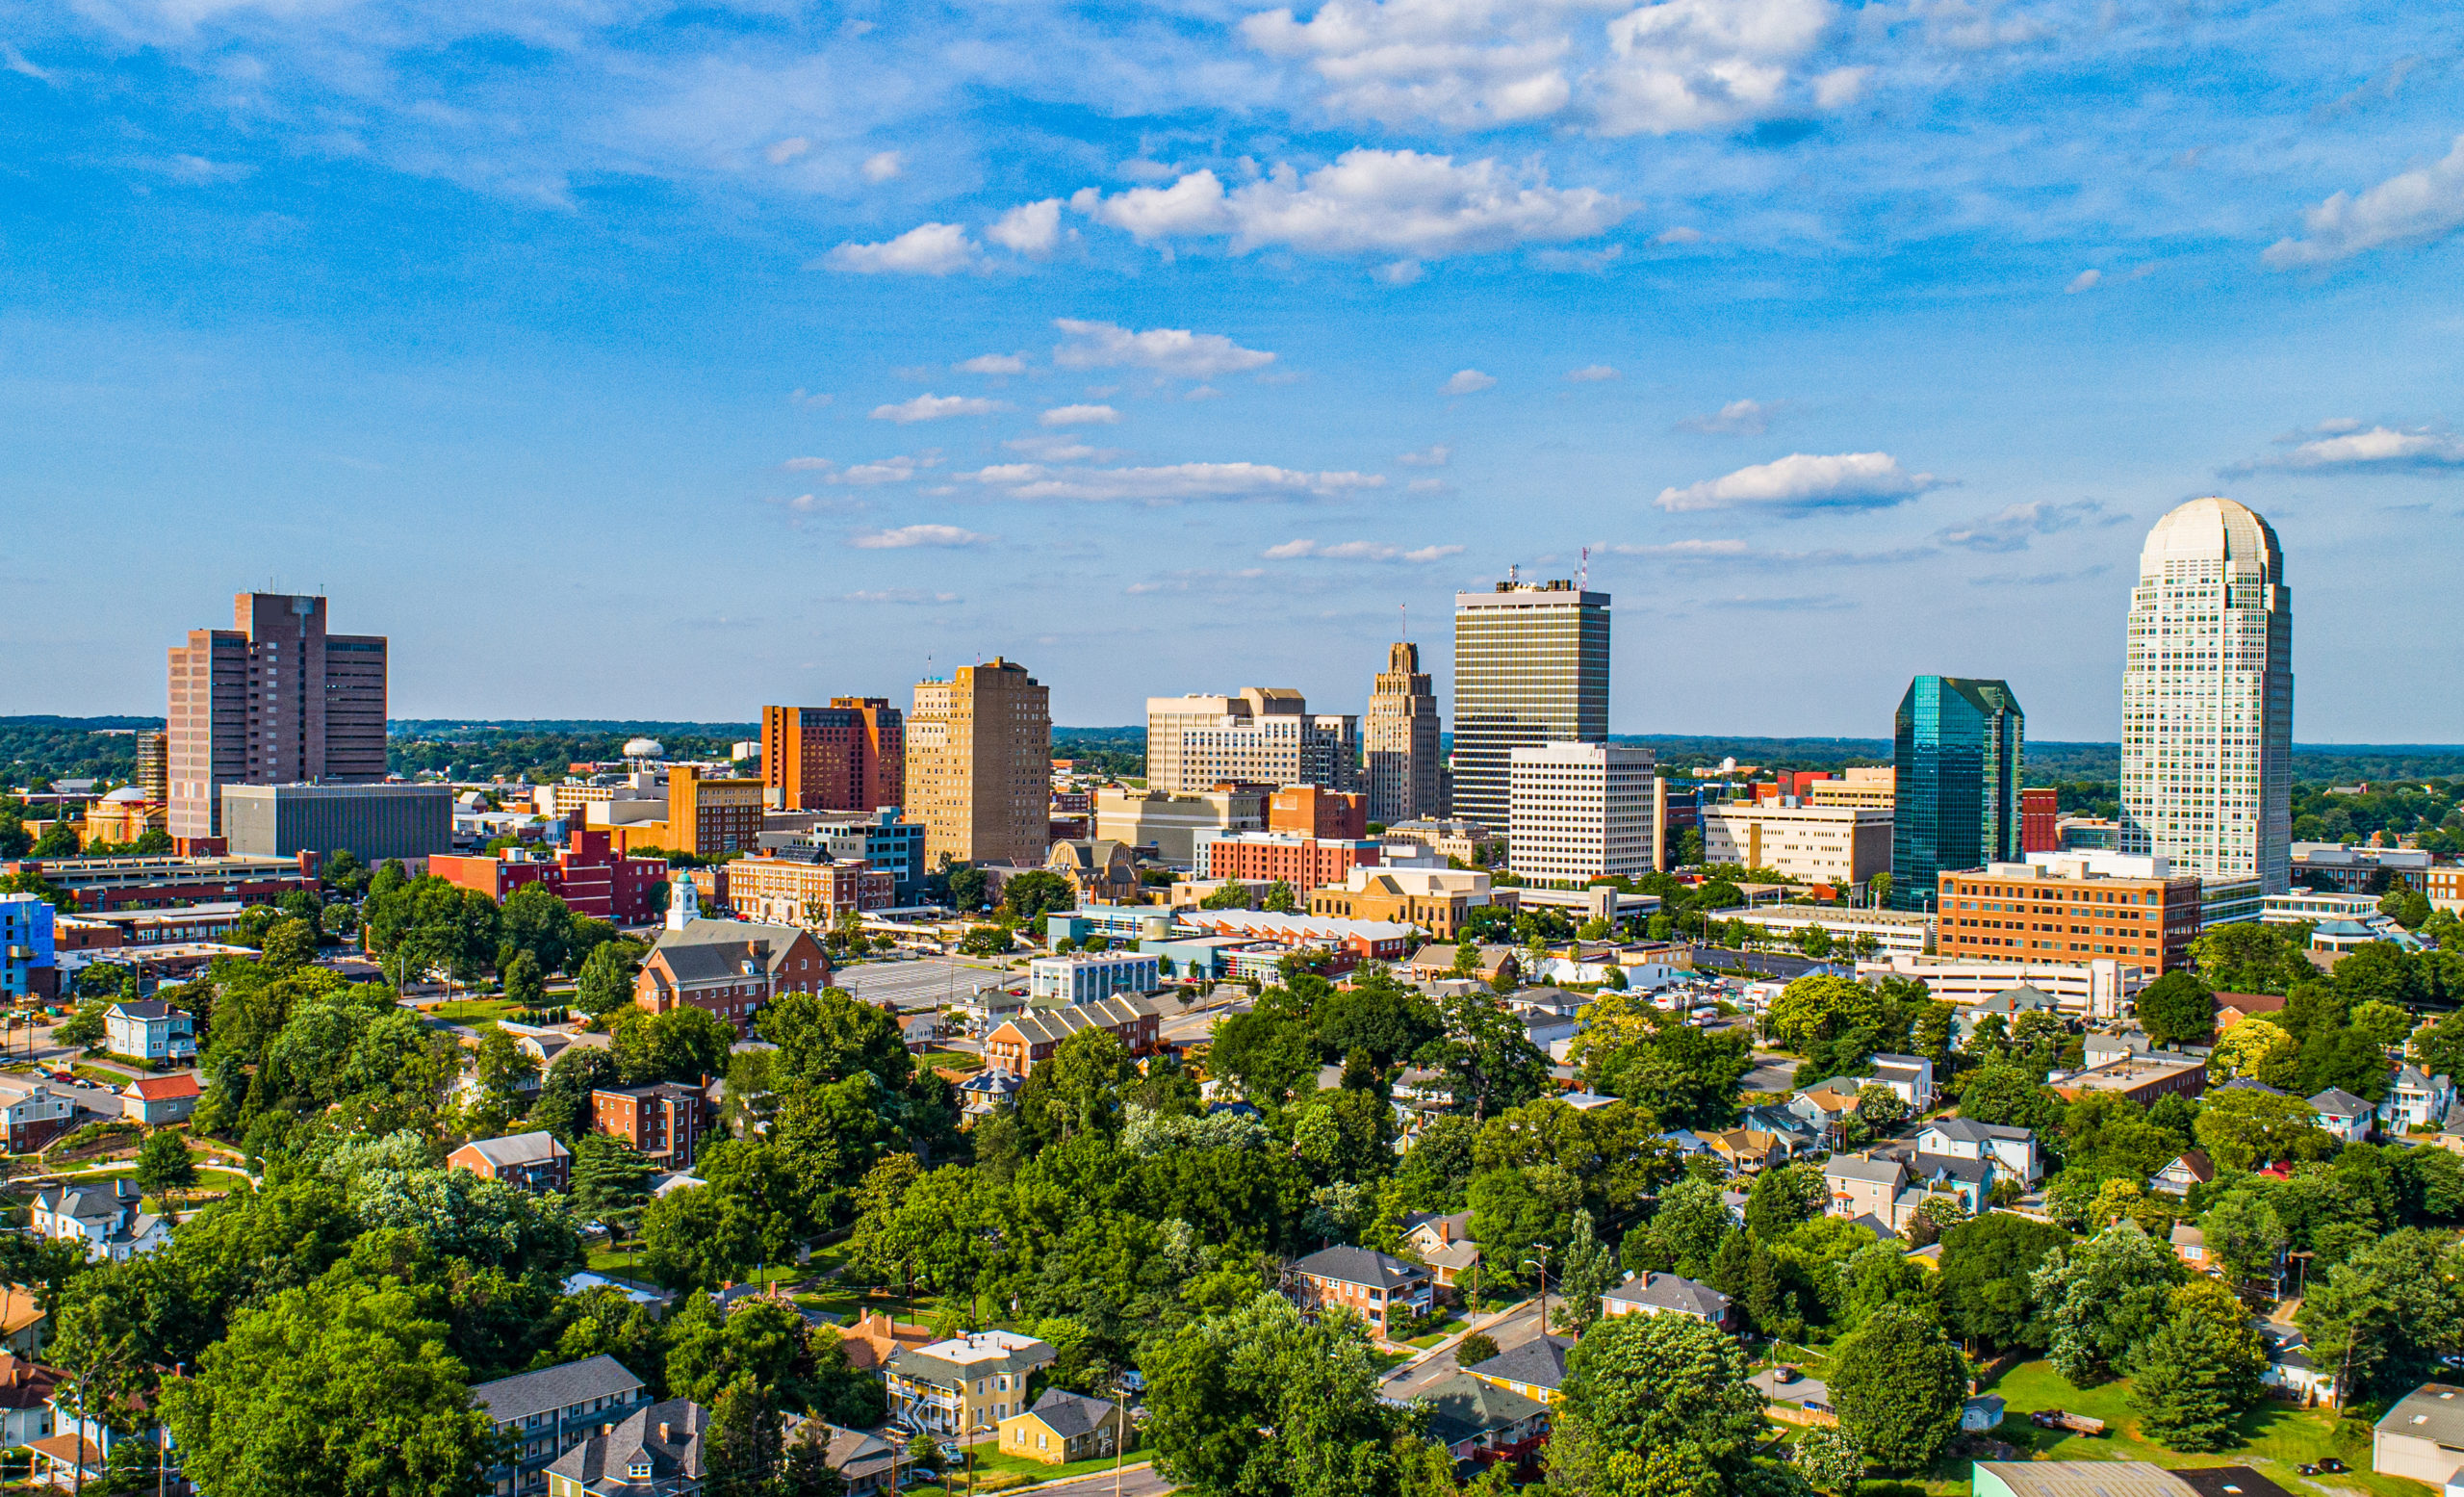 aerial view of Winston-Salem, North Carolina